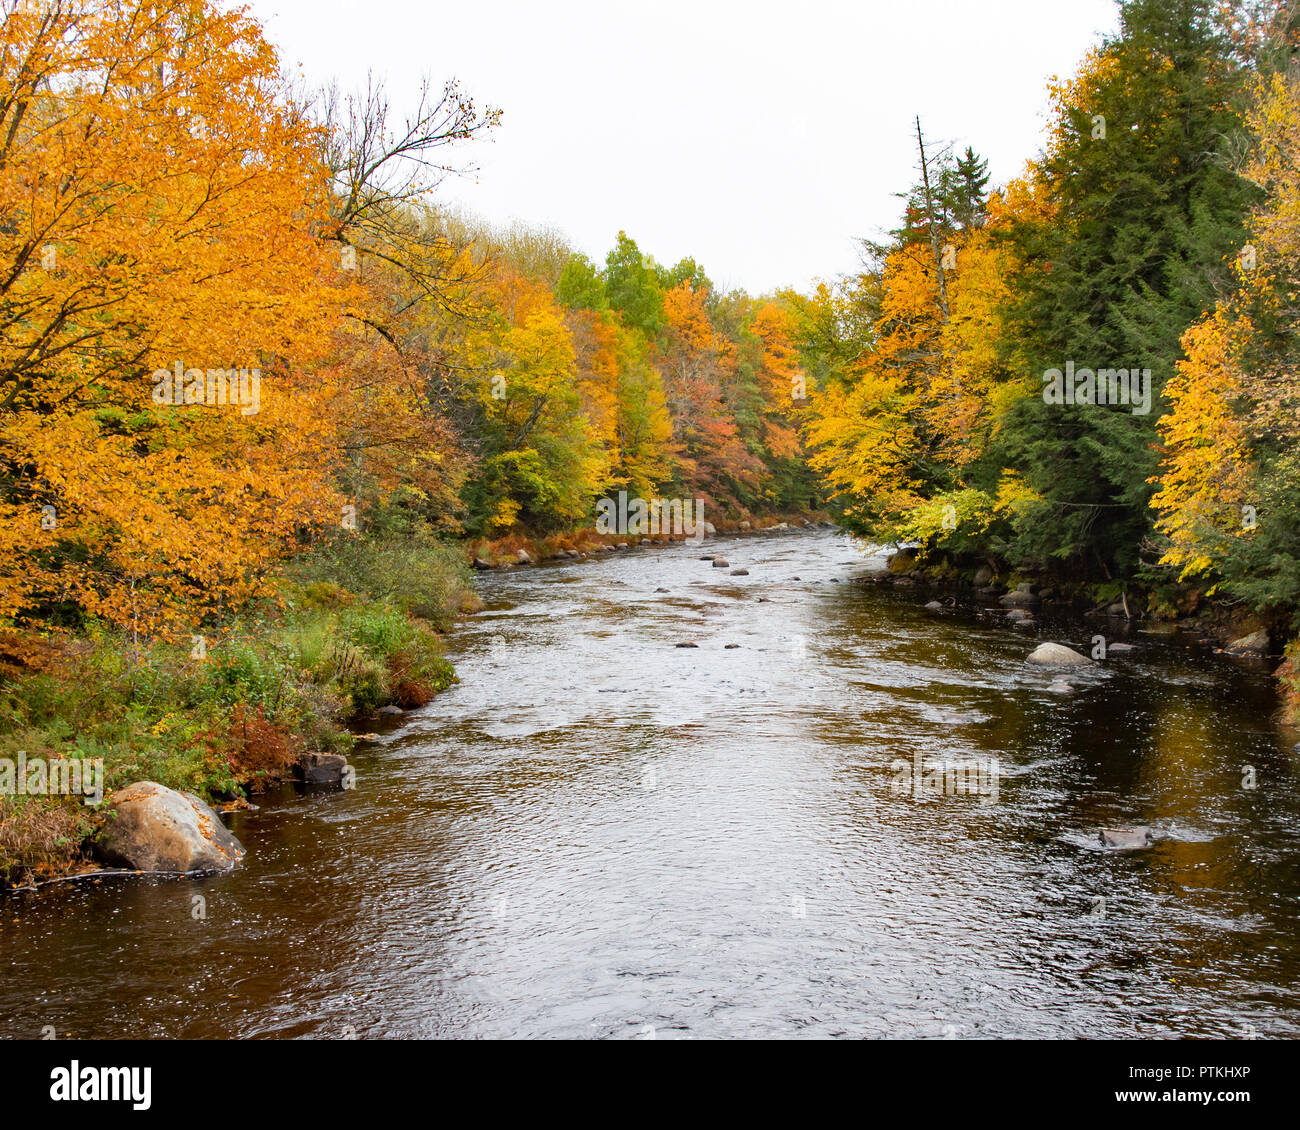 A colorful view of the Sacandaga River near Wells, NY USA with bright fall foliage. - Stock Image